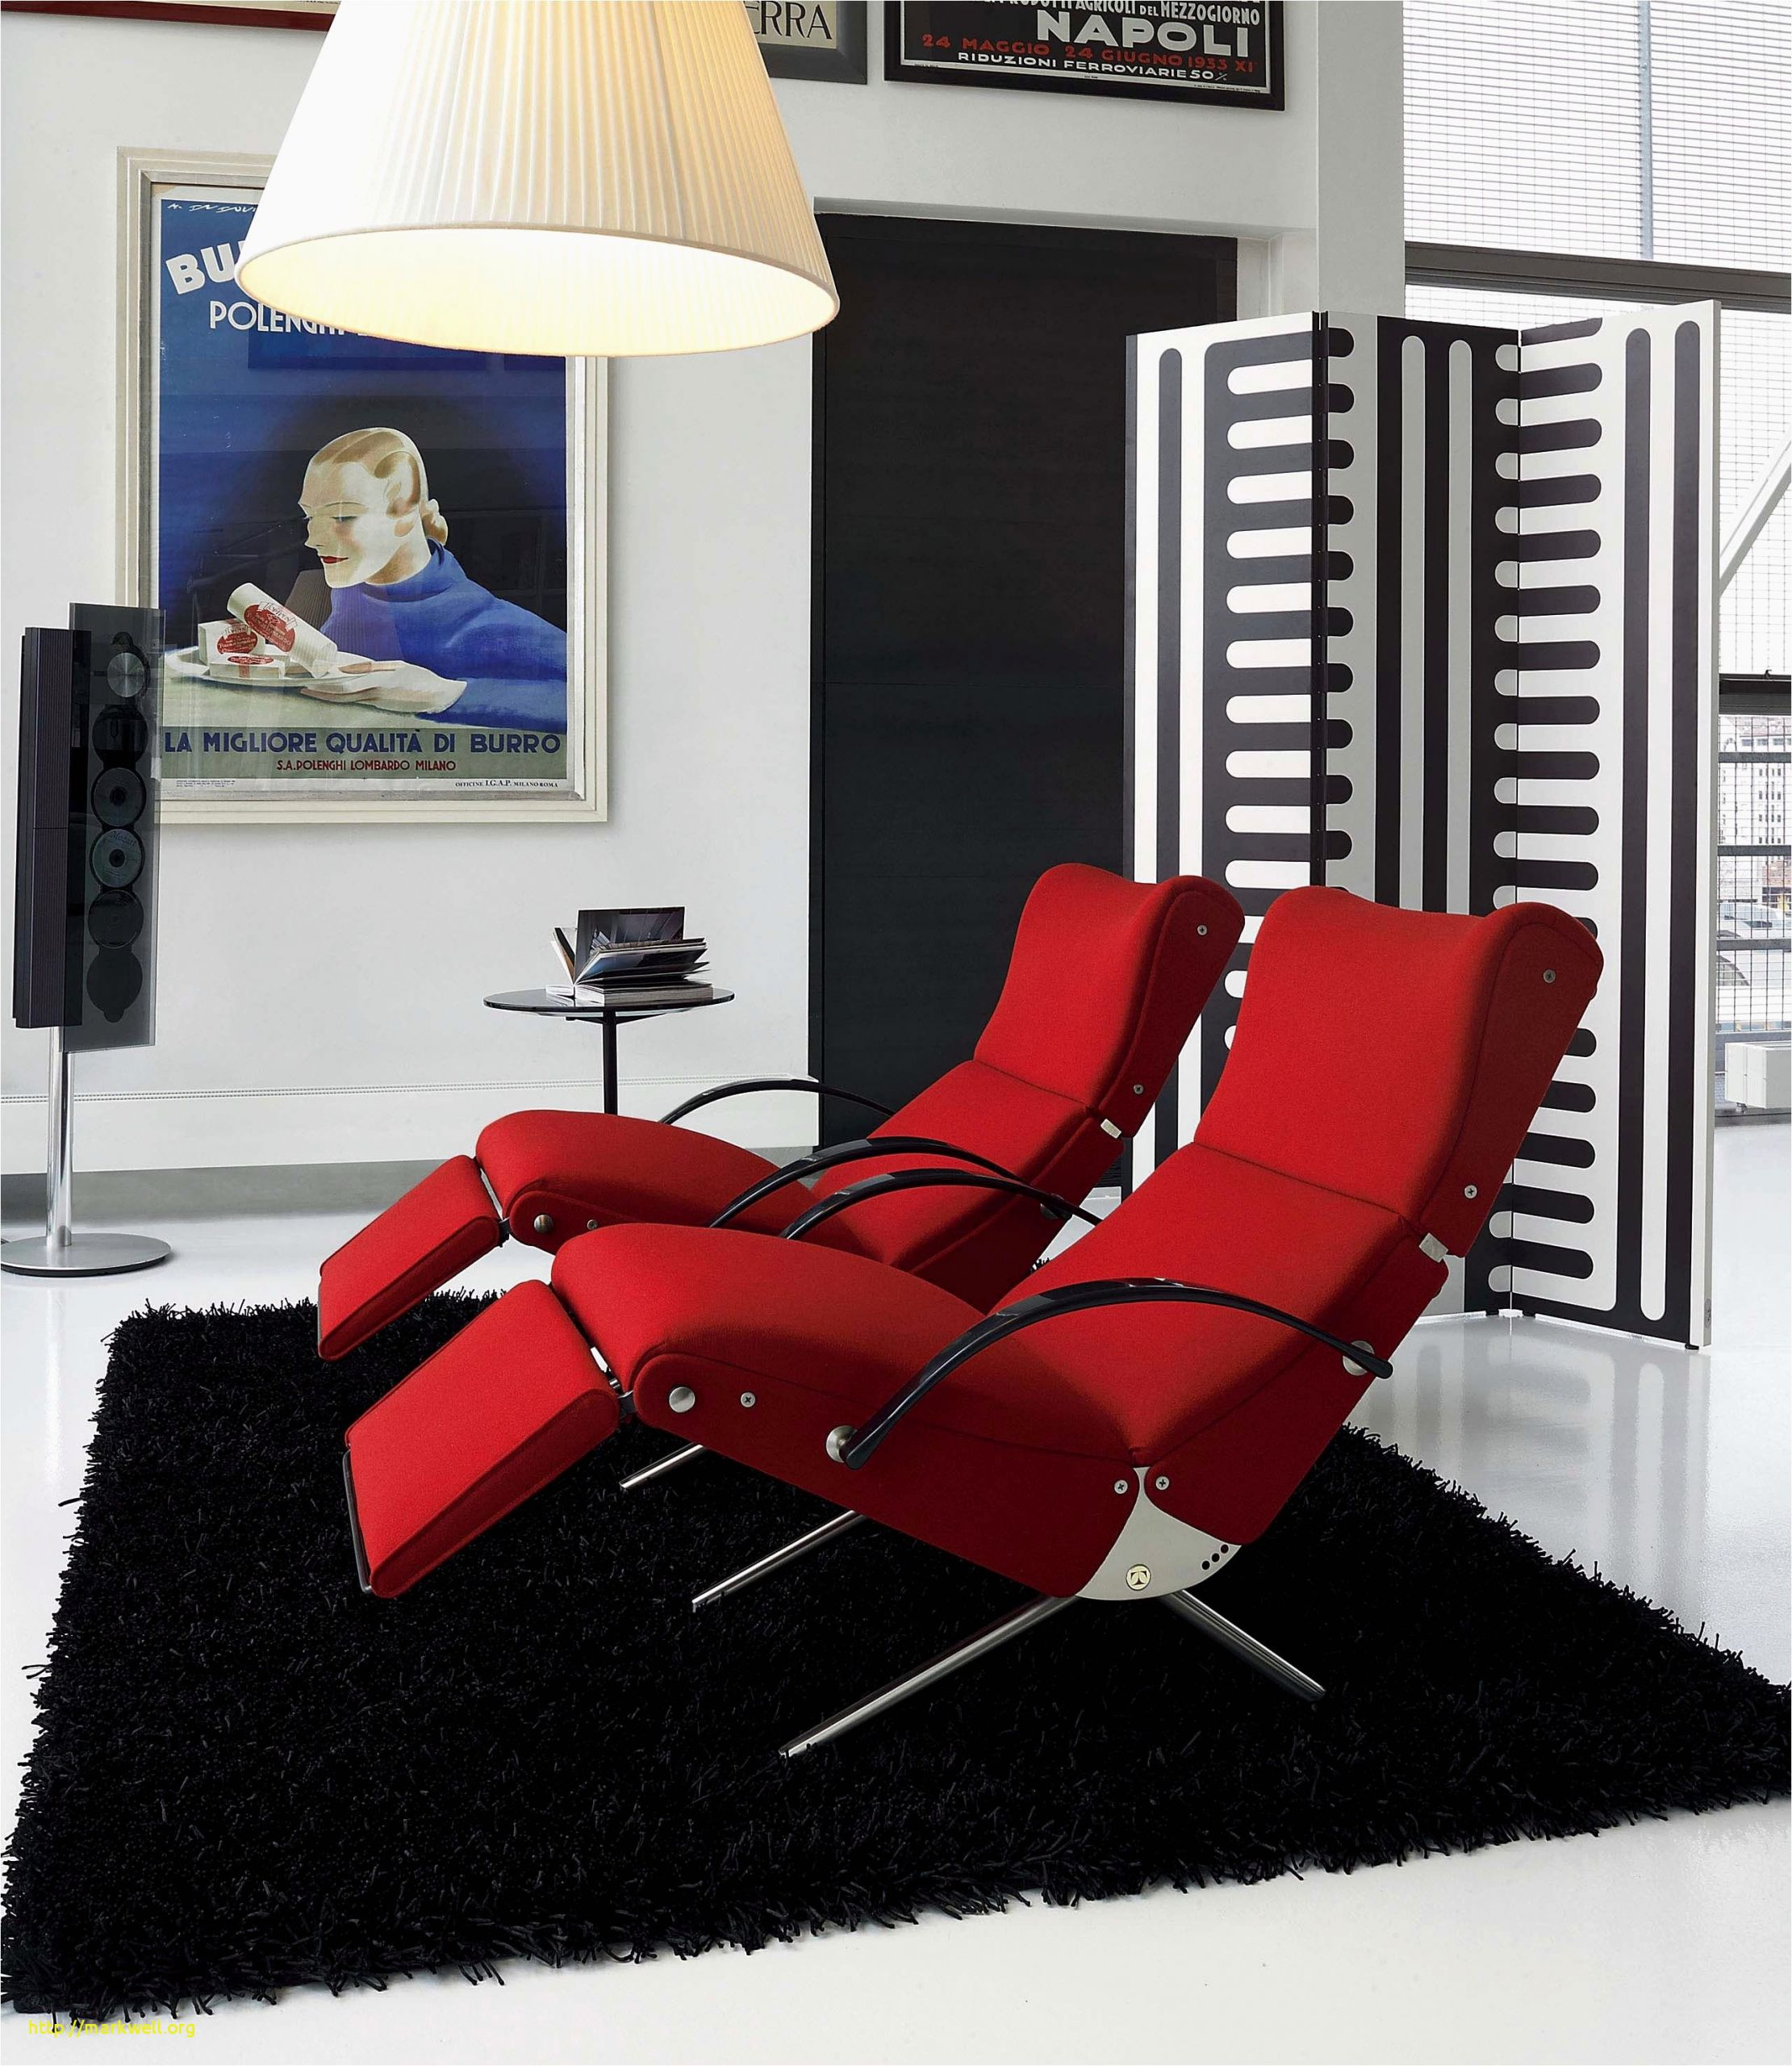 chaise lounge chairs indoor luxury 49 schon rattan lounge garten of chaise lounge chairs indoor